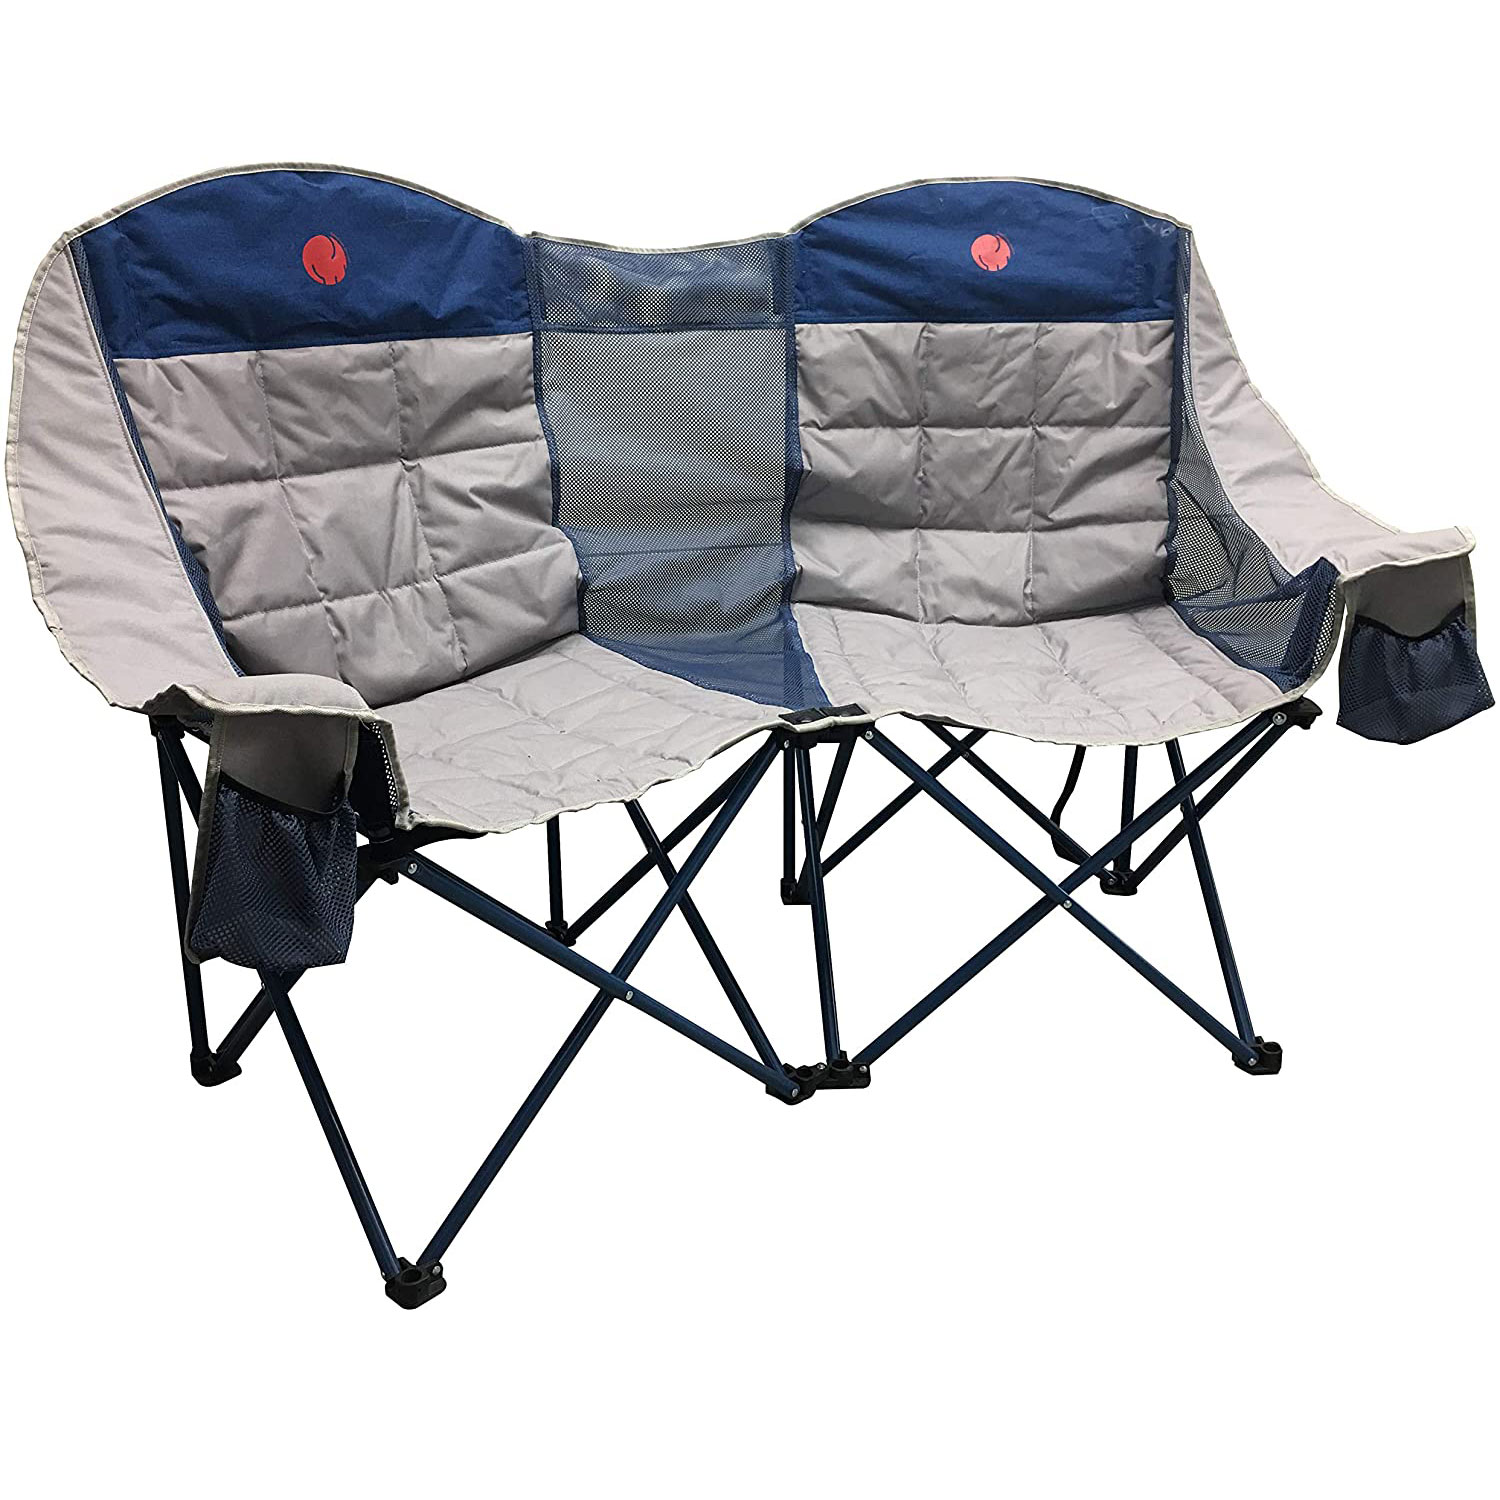 OmniCore Designs MoonPhase Home-Away LoveSeat Heavy Duty Oversized Folding Double Camp Chair Collection